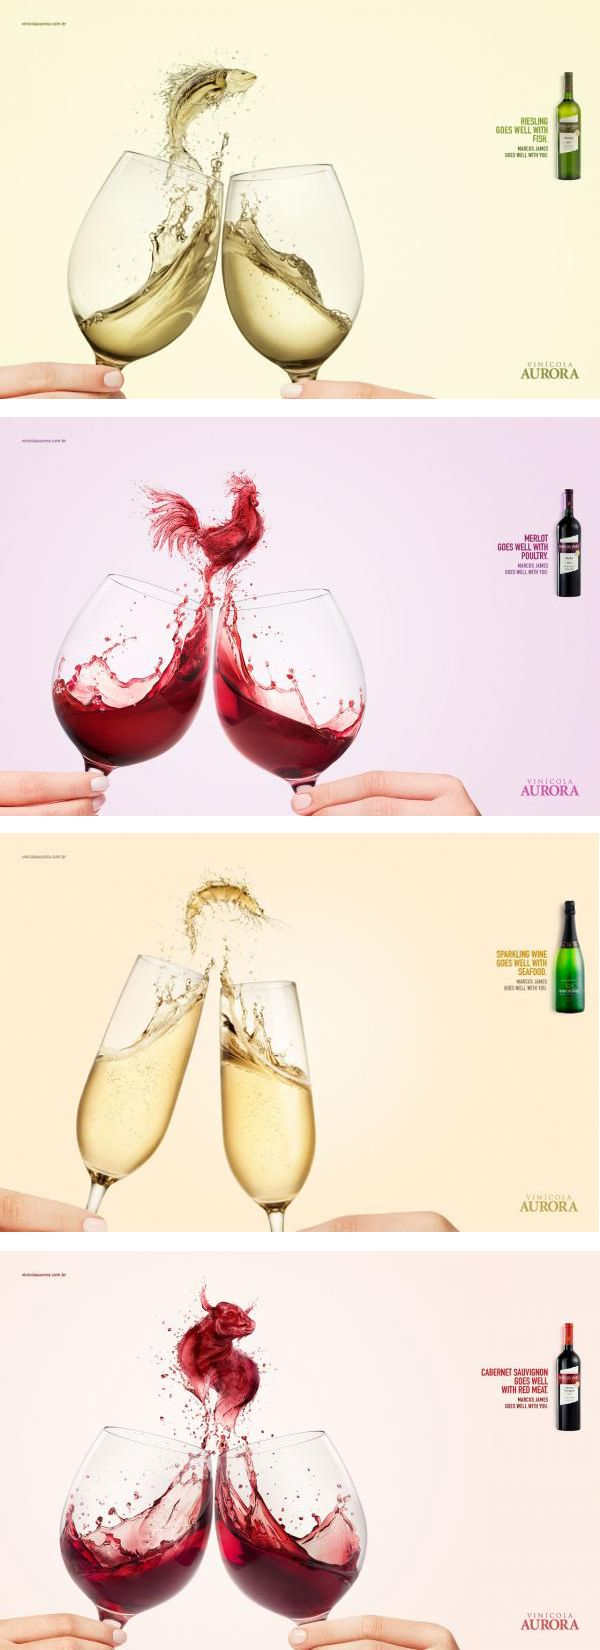 Great Advertisement Campaign for Aurora Wines -Do you like the visuals to cement food pairing ideas?